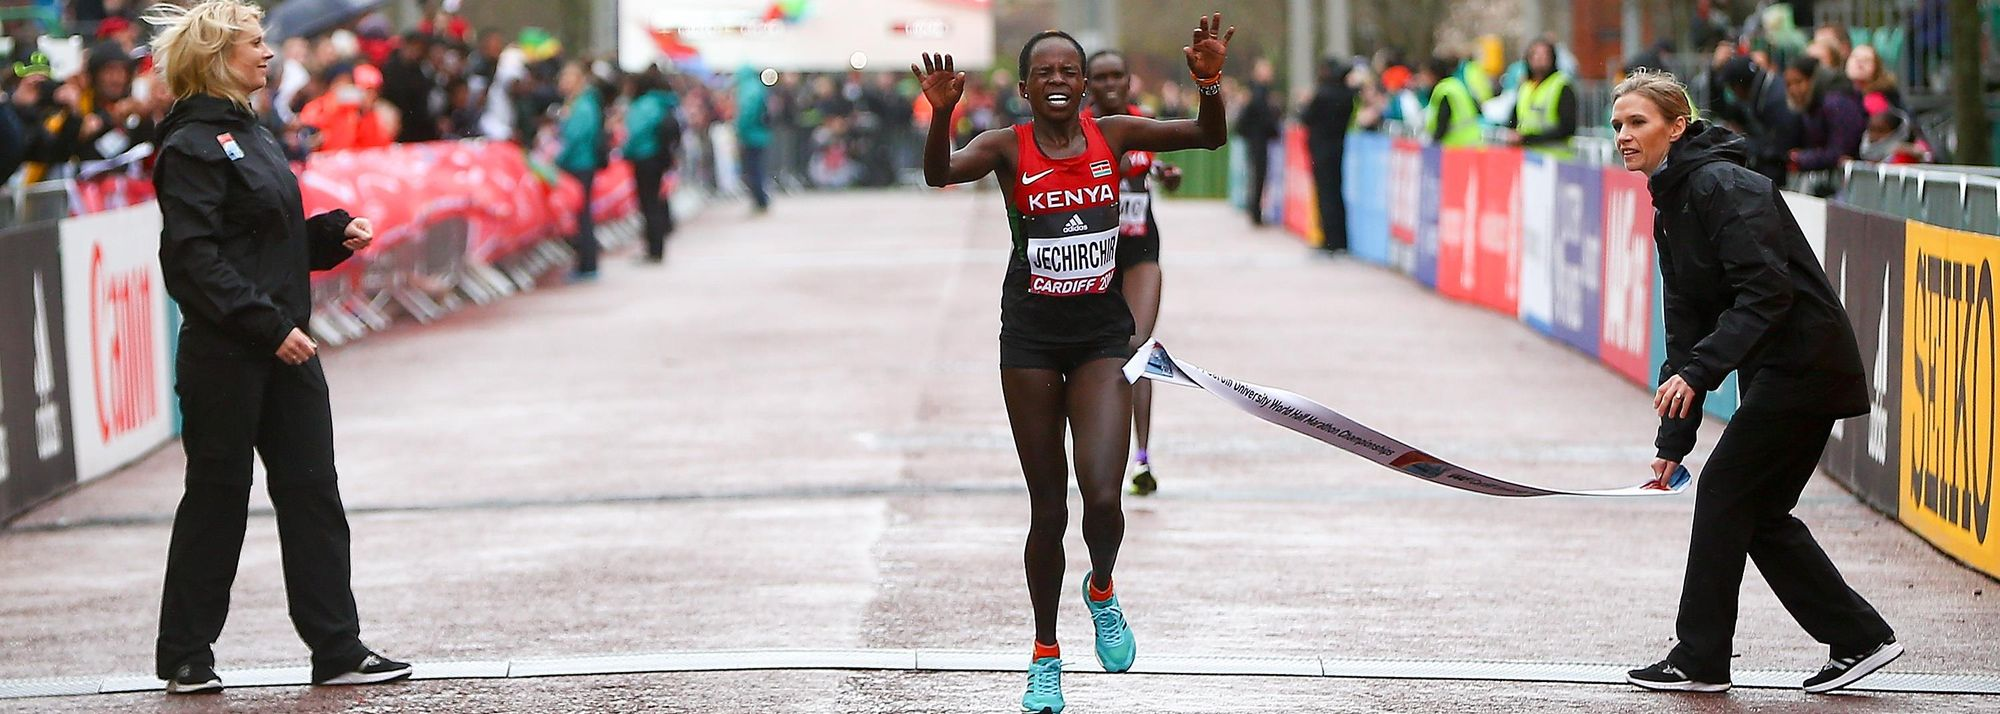 When Peres Jepchirchir added circles of gold colour to her hair ahead of the IAAF/Cardiff University World Half Marathon Championships Cardiff 2016, it became something of an unintentional good-luck charm.